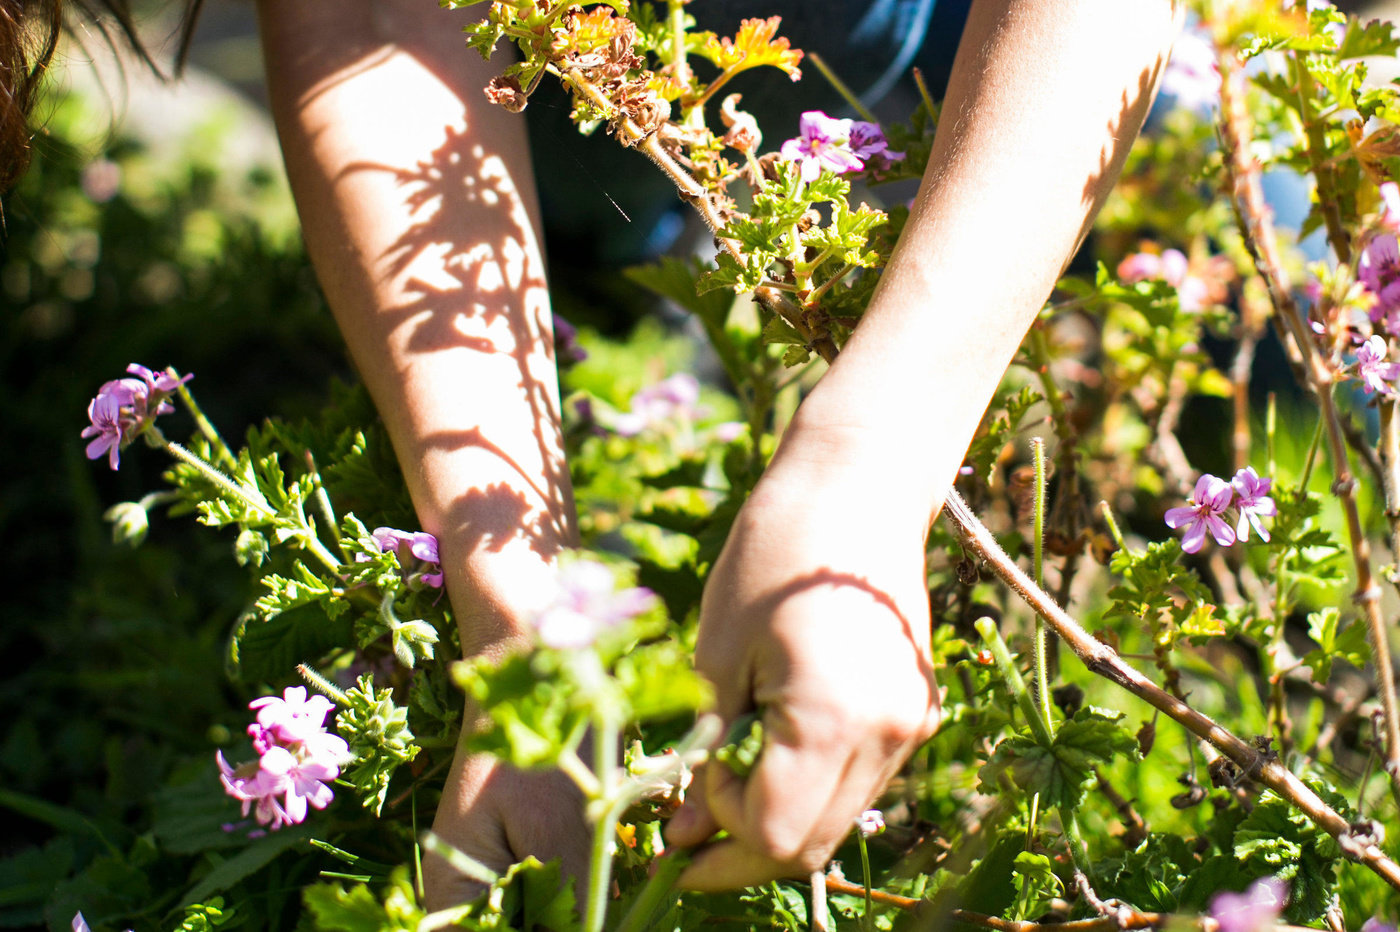 Hands picking wild flowers